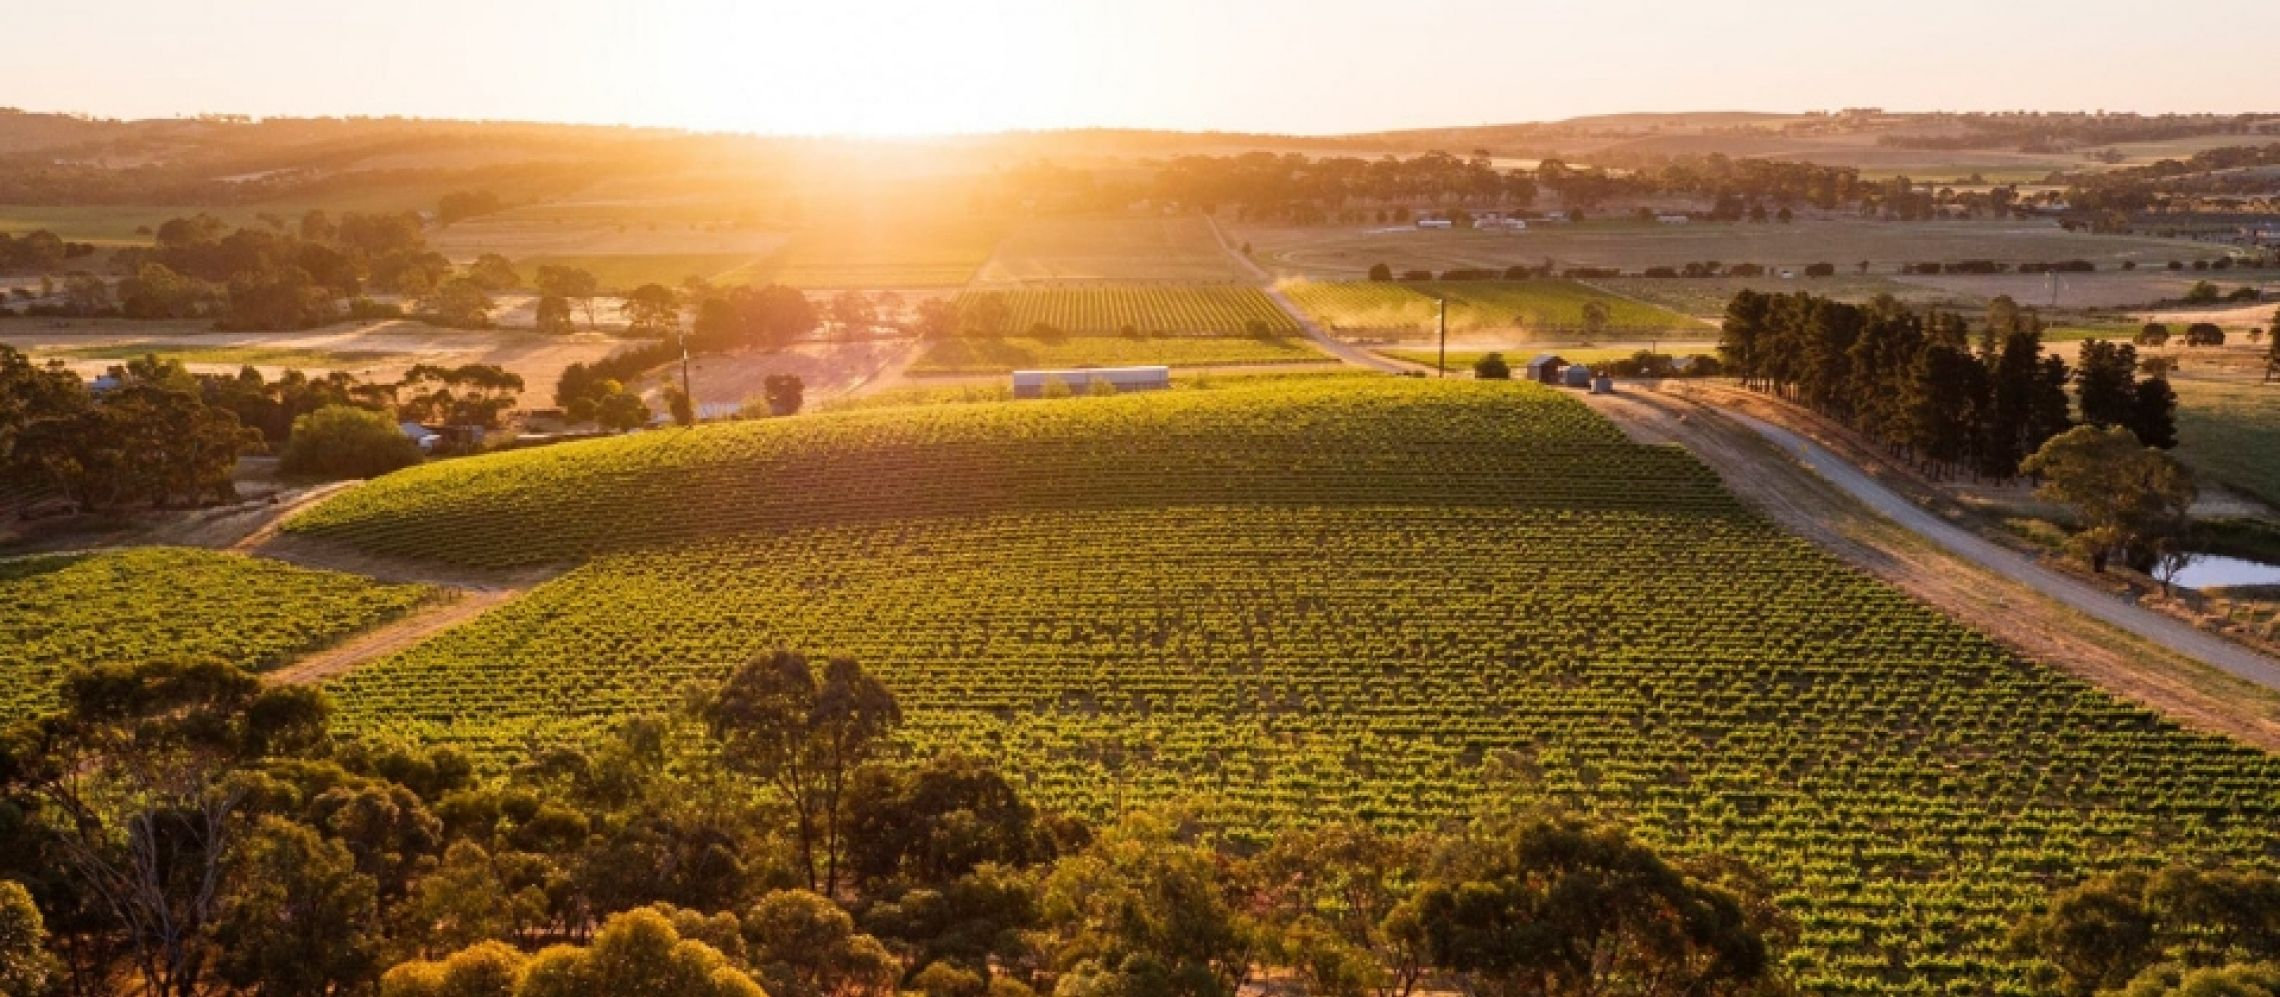 Photo for: Byrne Vineyards- Family Owned and Estate Grown in Australia